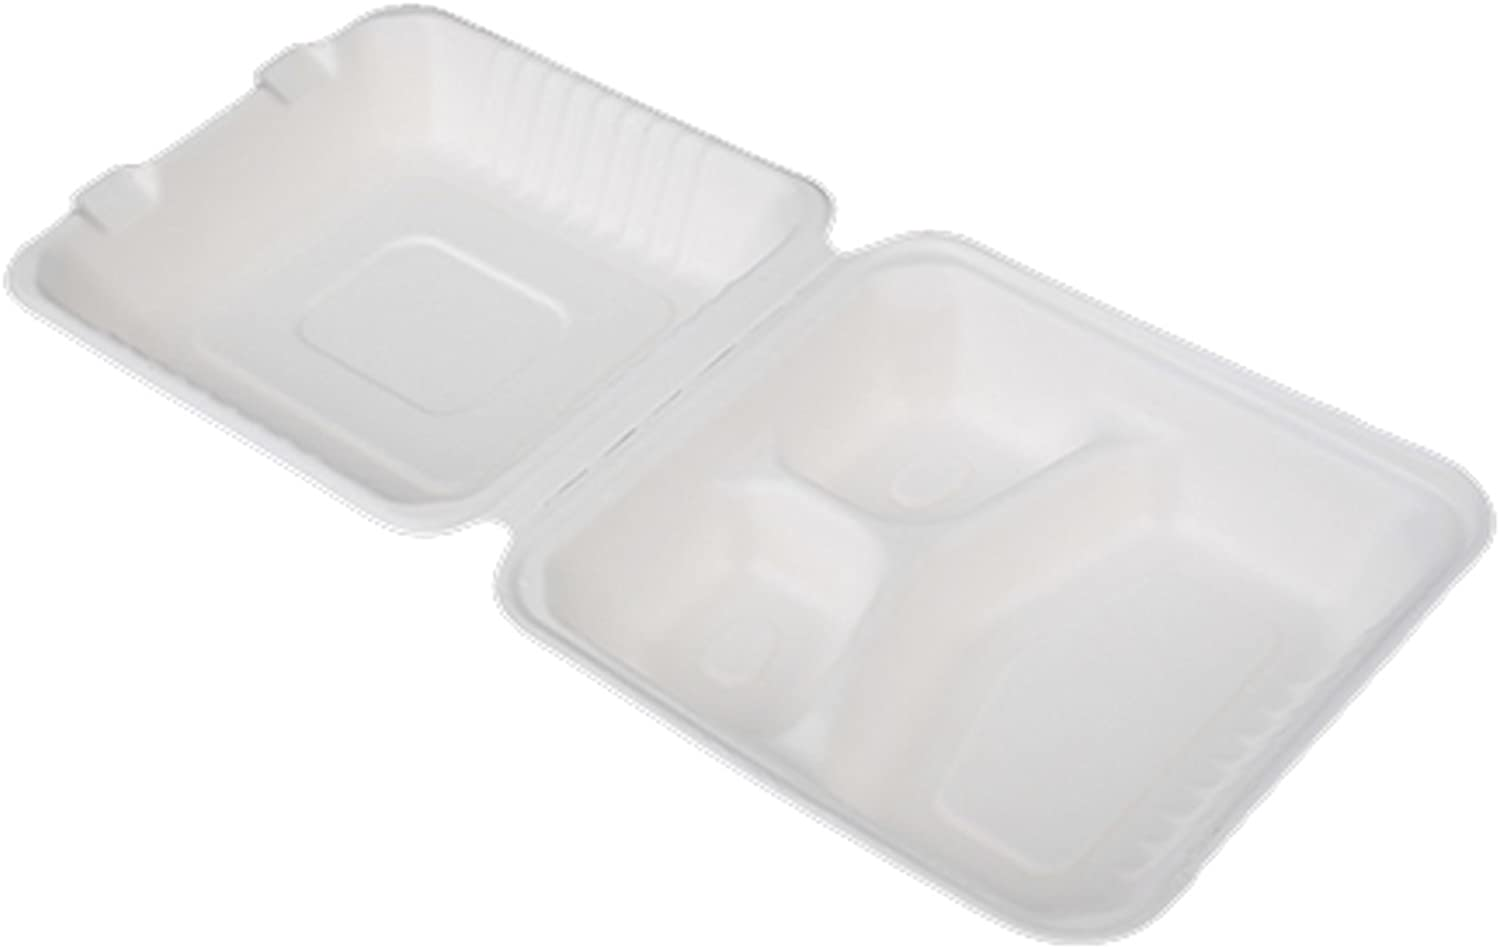 Go-Green Eco-Friendly 100% compostable, Sugarcane Fiber, 9-Inch 3Compartment Hinged Clamshell, 100 Pack